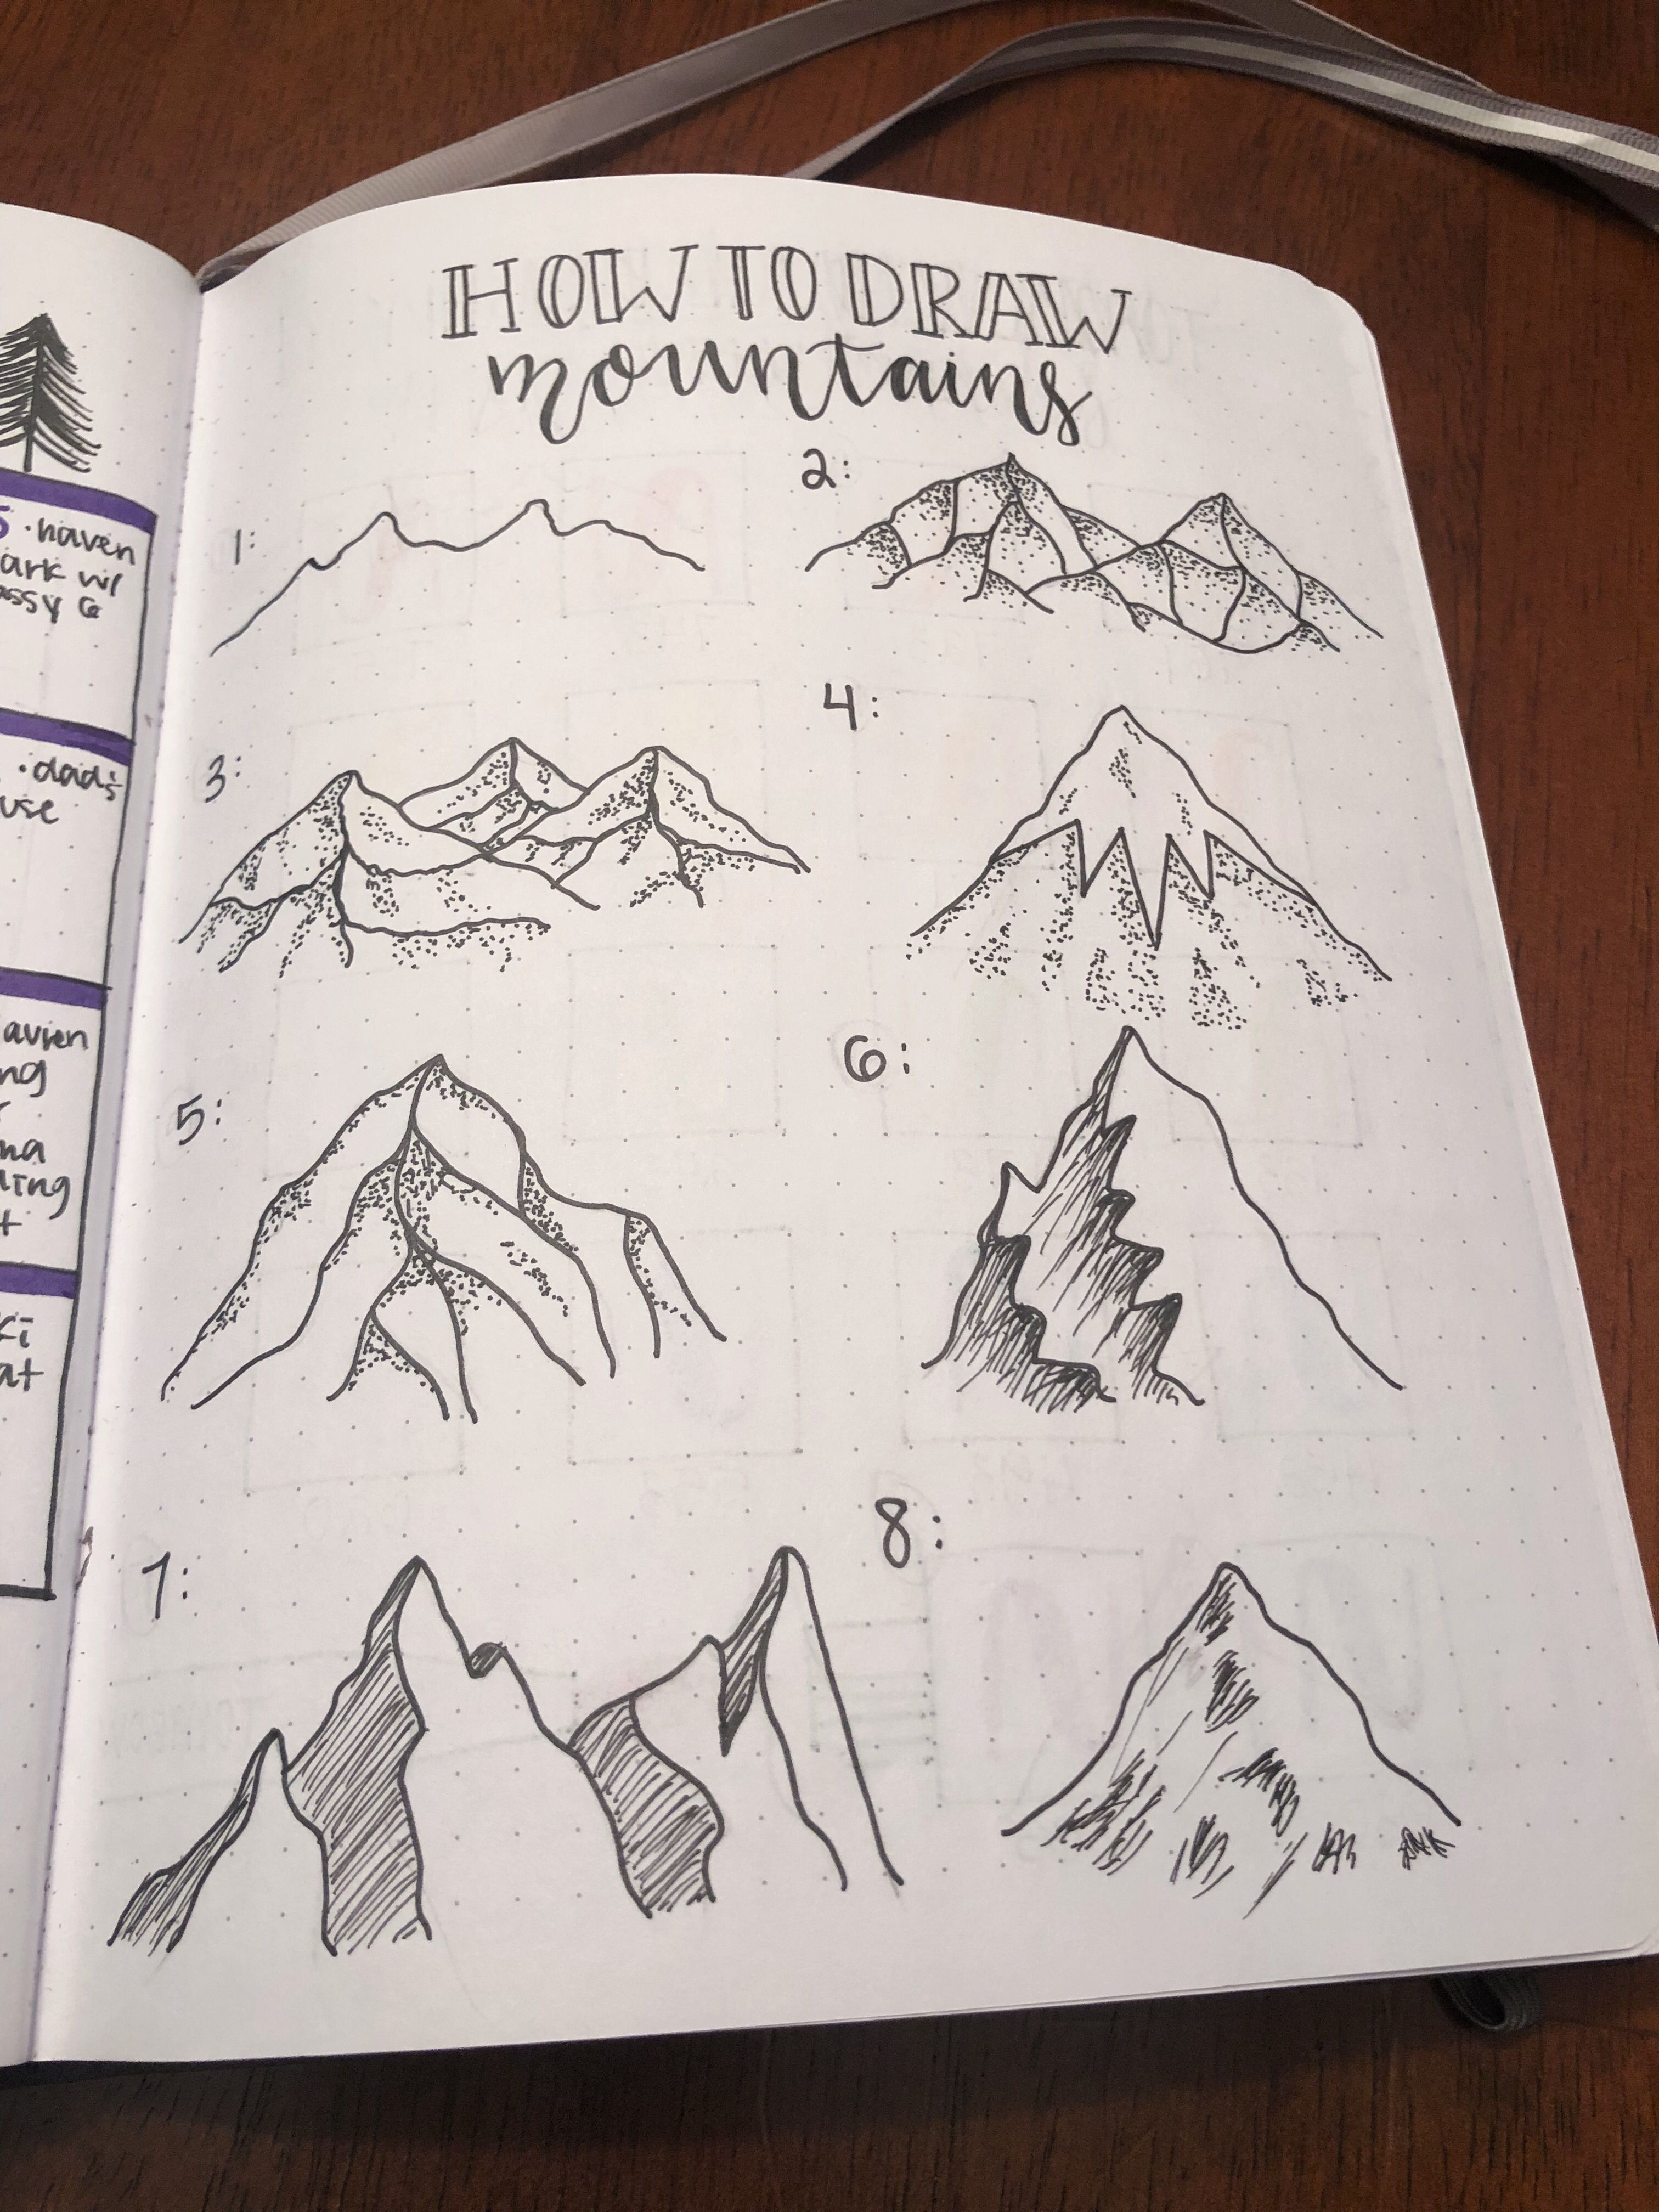 How To Draw Mountains Bullet Journal Ideas Pages Bullet Journal Doodles Bullet Journal Art